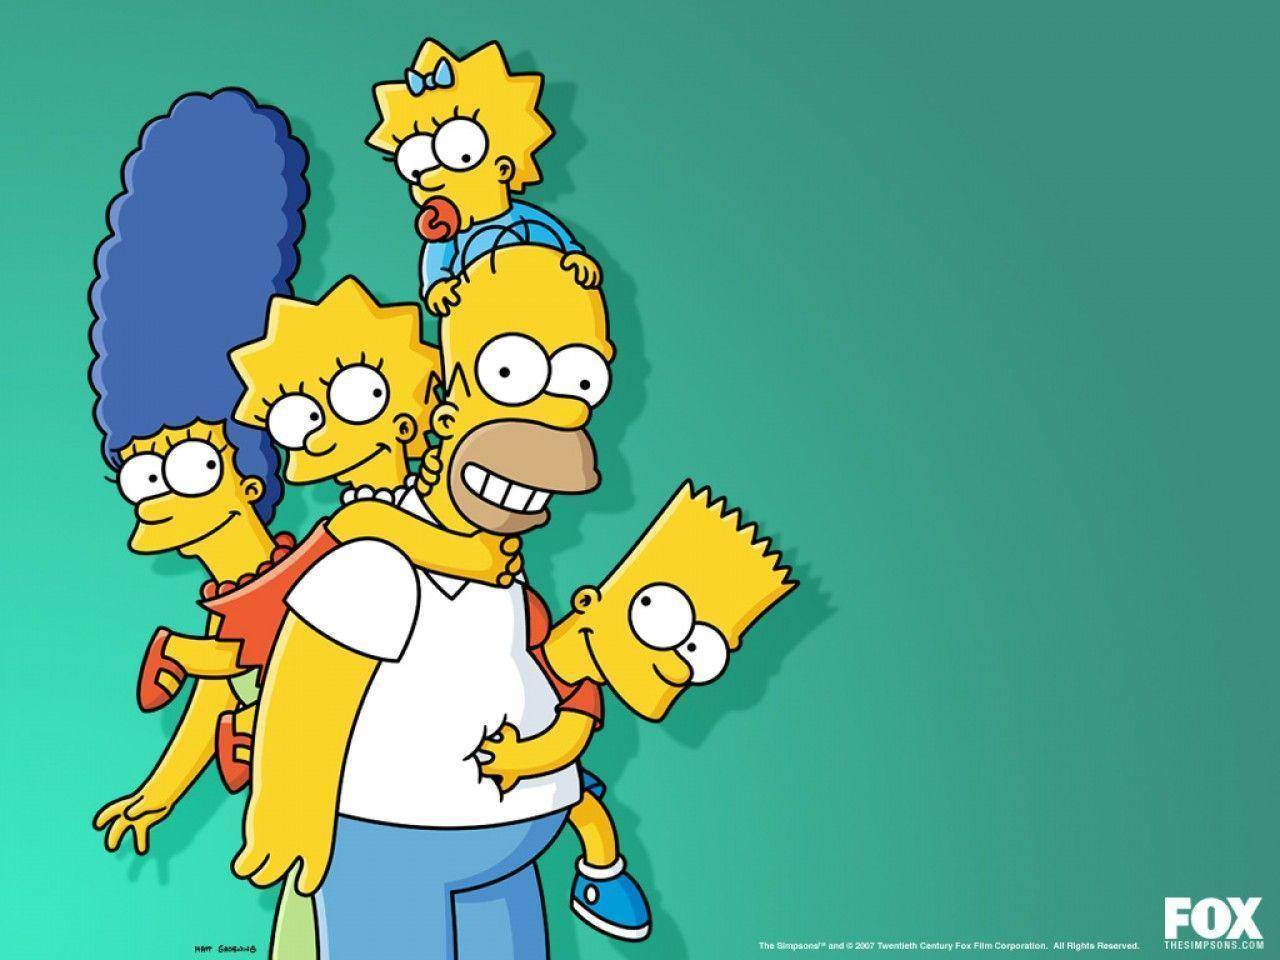 the simpsons Computer Wallpapers, Desktop Backgrounds | 1280x960 ...